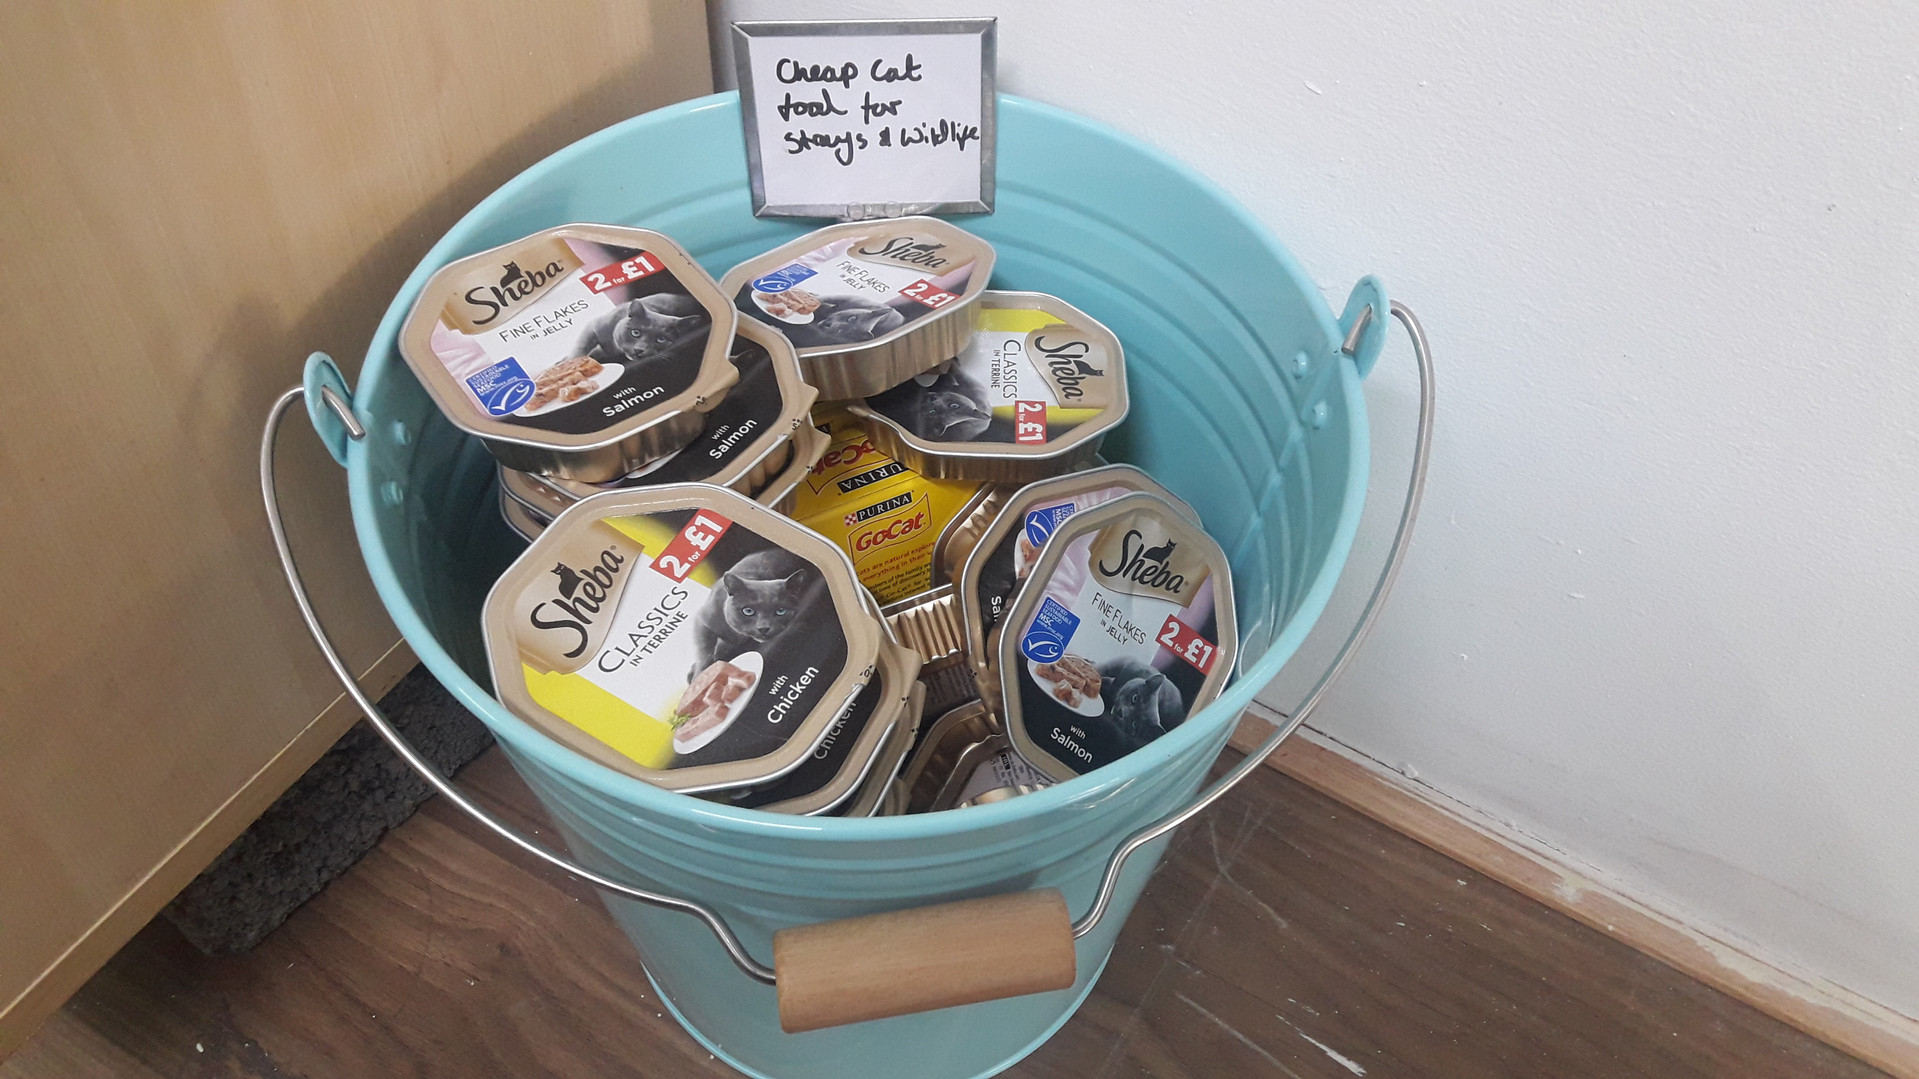 Cheap cat food For Strays & Wildlife